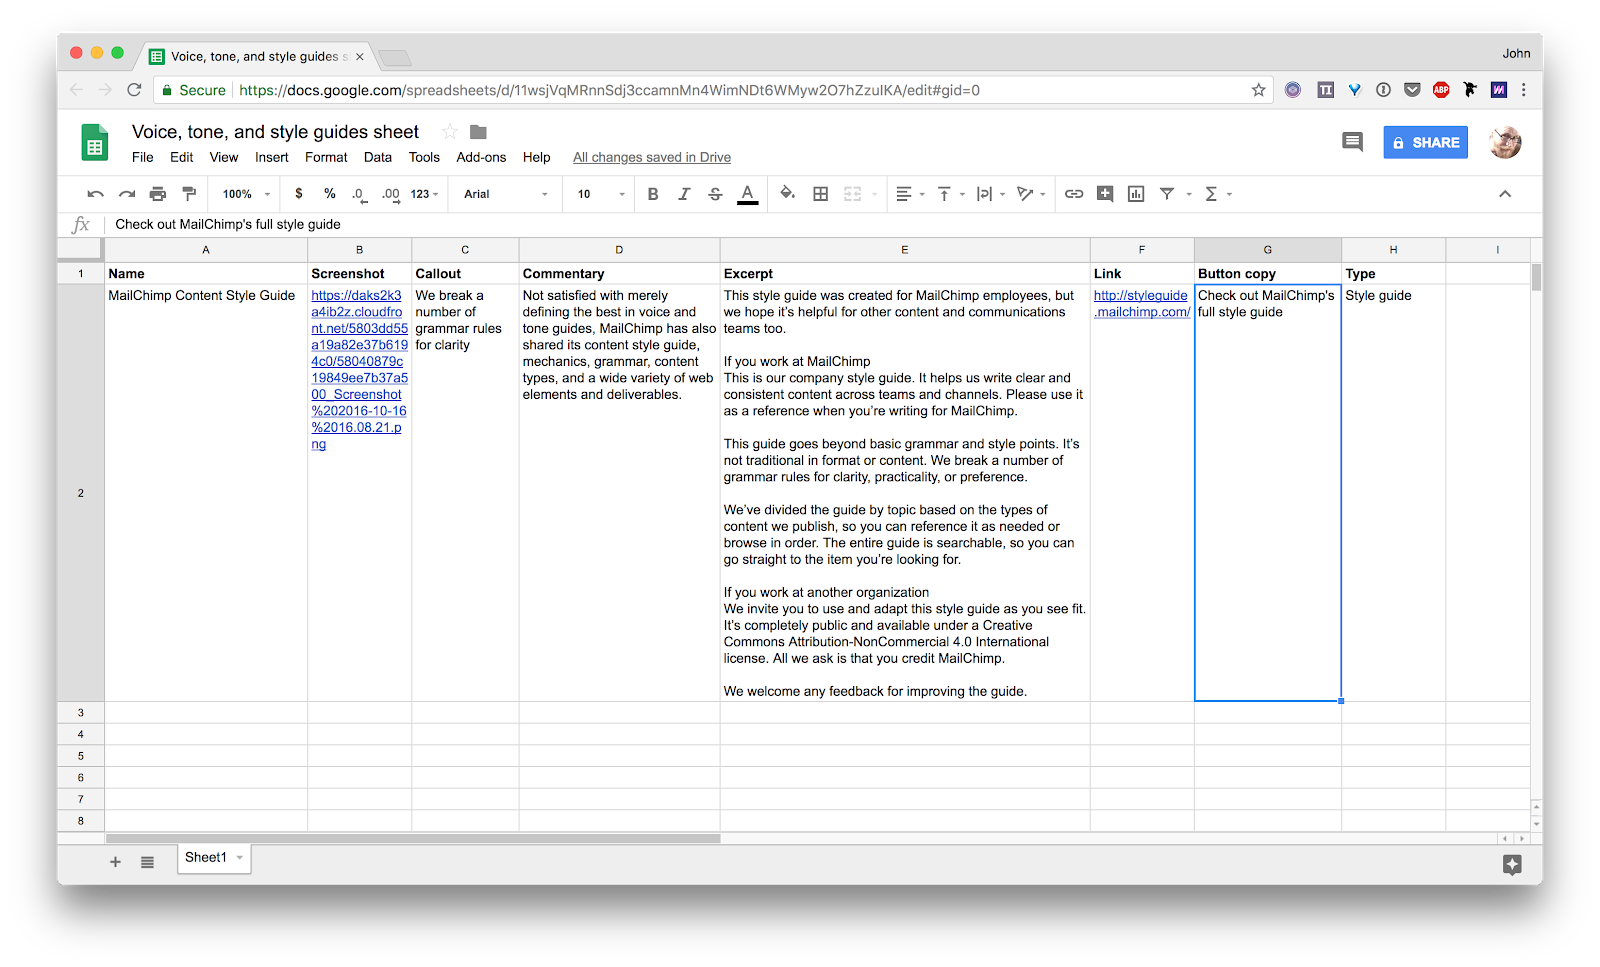 Google spreadsheet for Voice, tone, and style guides